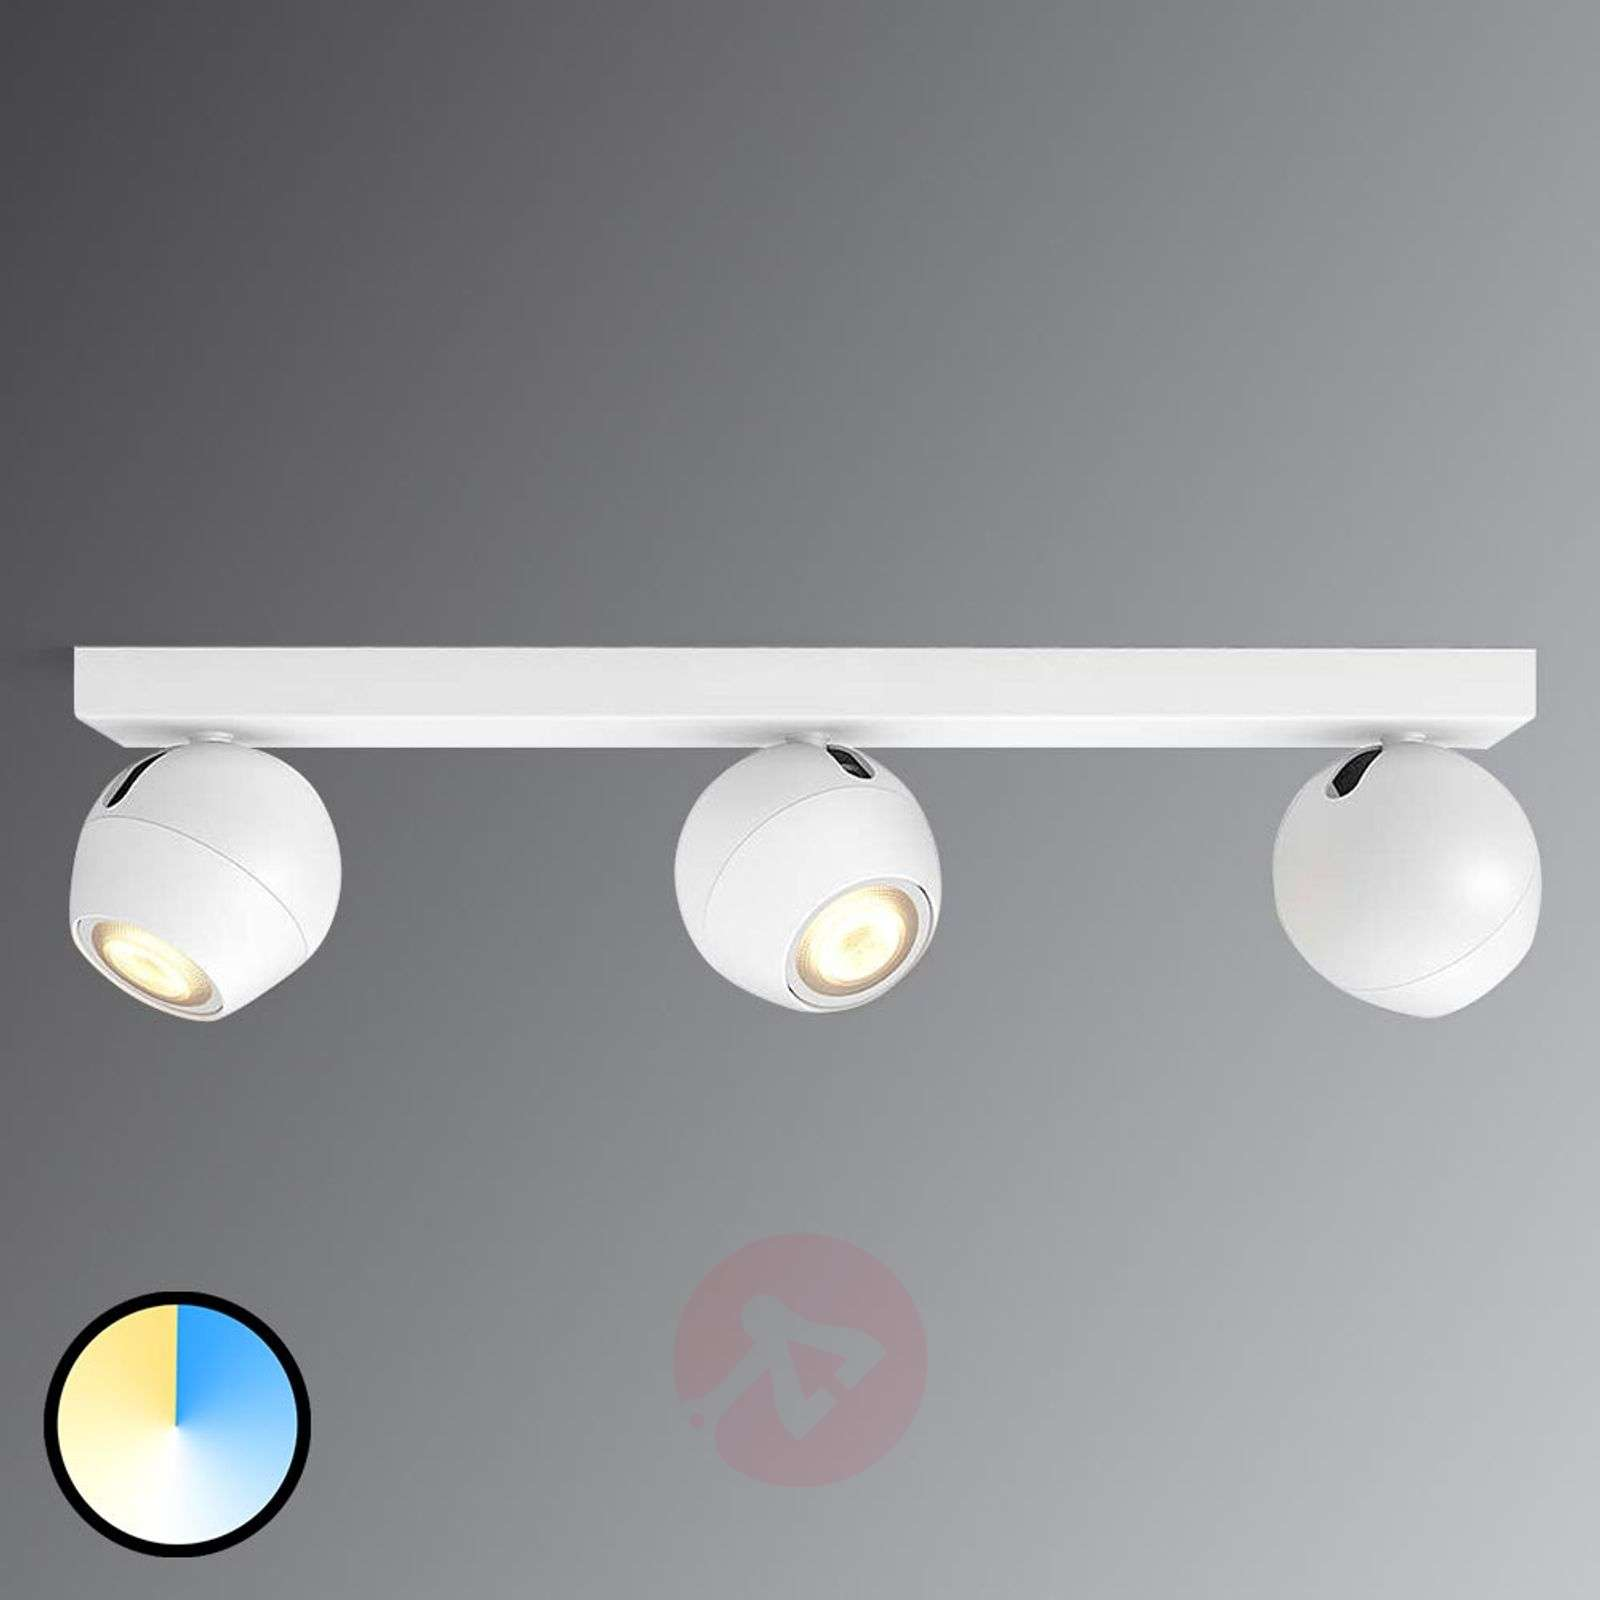 Groovy Buckram -.Philips Hue LED spot wit met 3 lampen | Lampen24.nl UP34